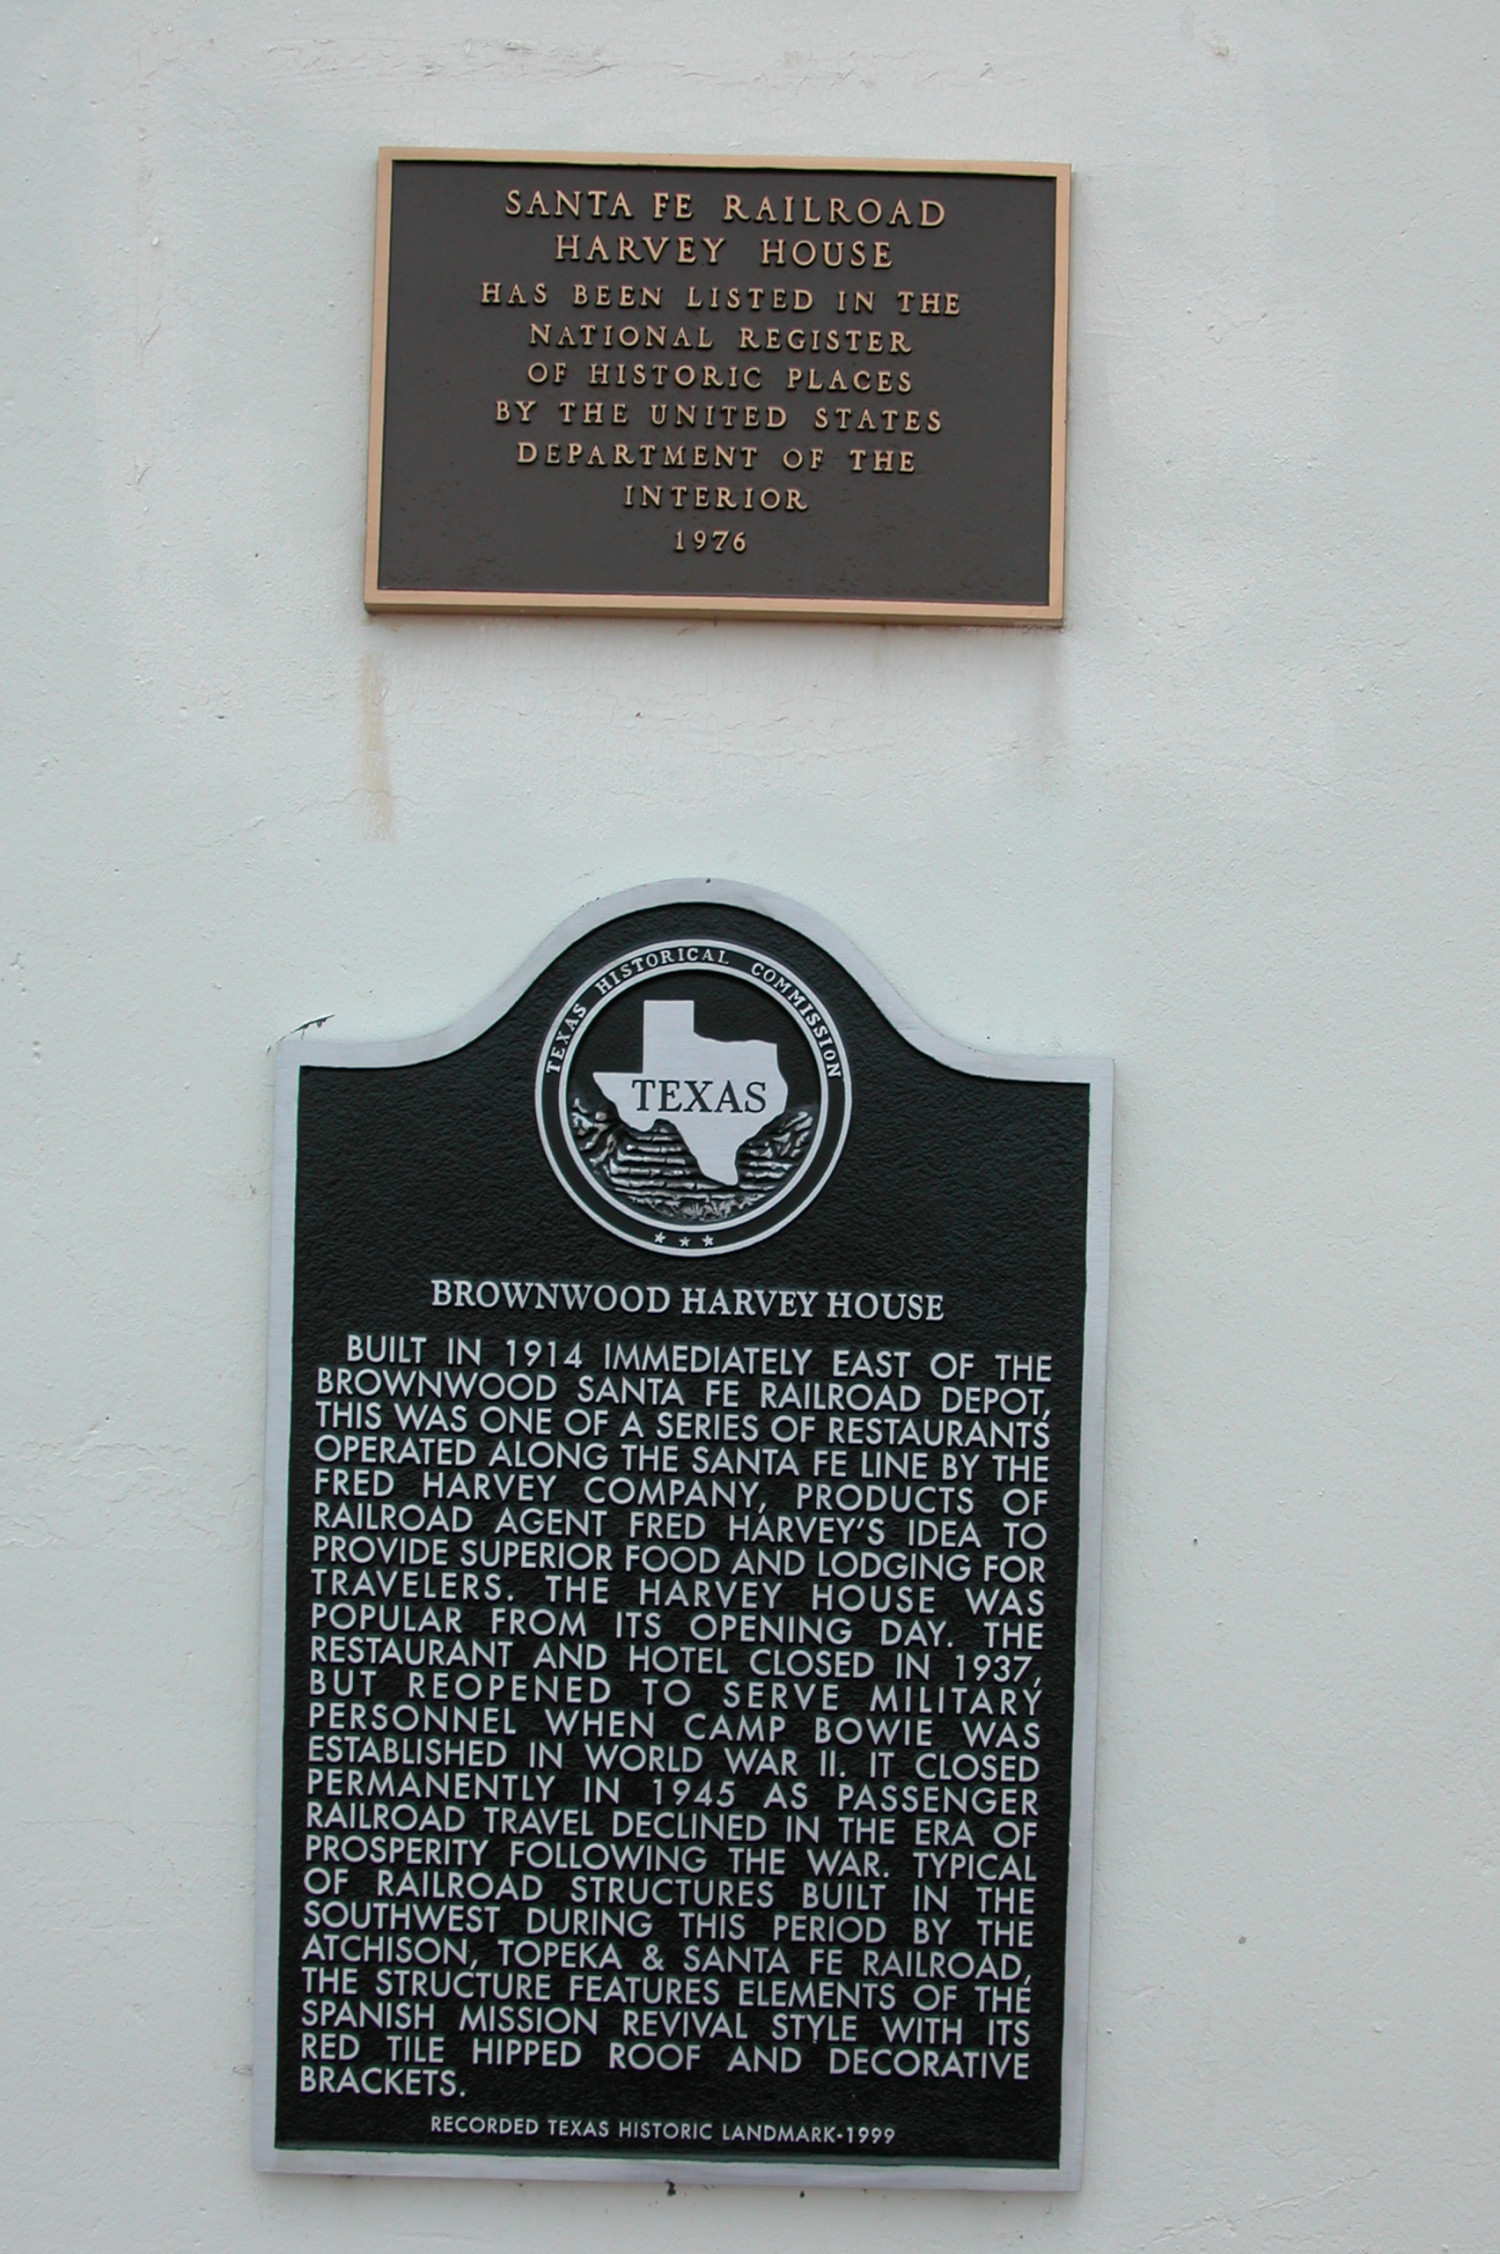 Brownwood Harvey House, Historic Plaque                                                                                                      [Sequence #]: 1 of 1